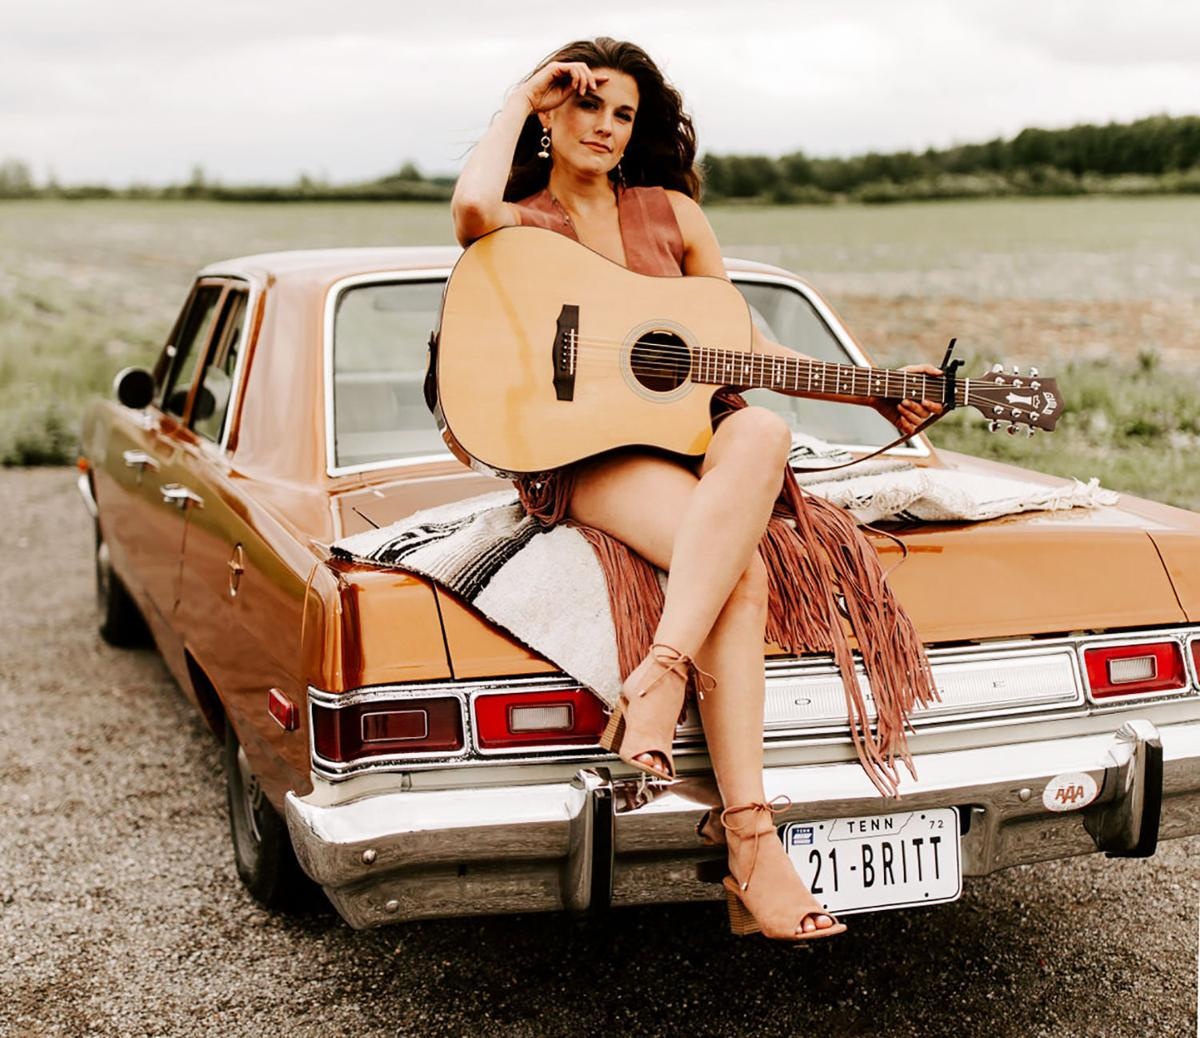 Local singer Brittany Kennell one of eight finalists in SiriusXM Top of the Country competition